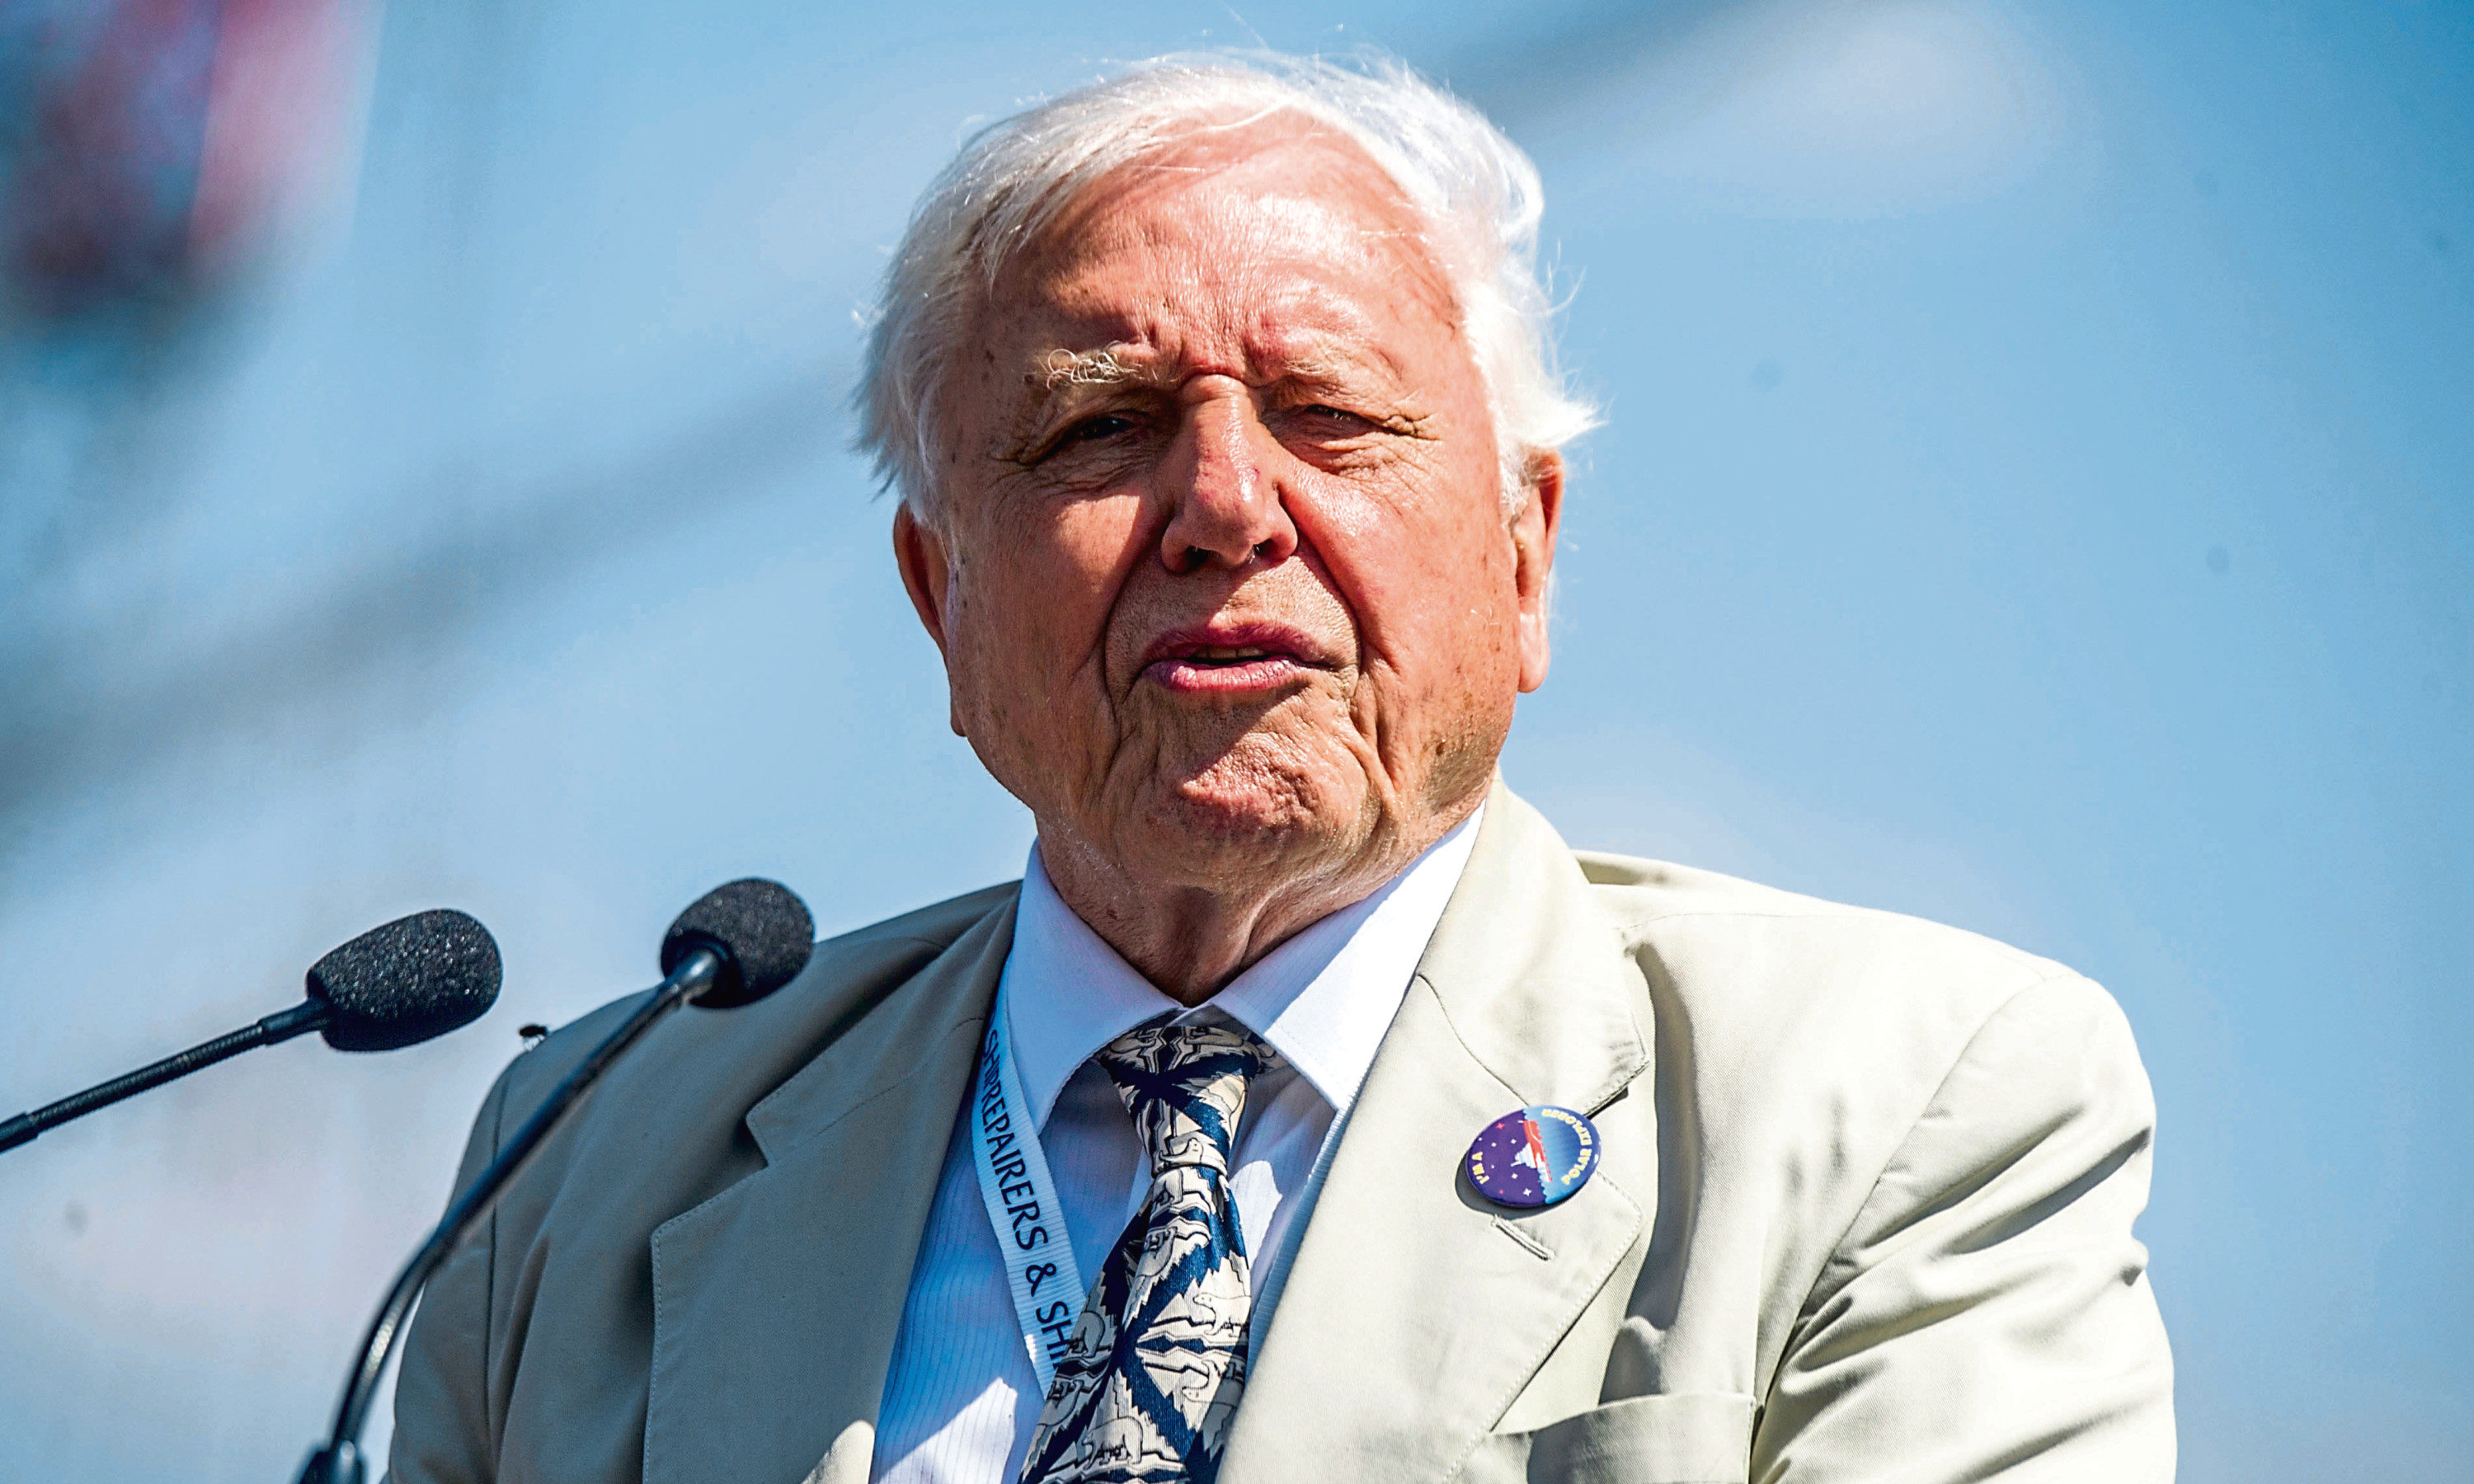 Broadcaster and naturalist Sir David Attenborough.